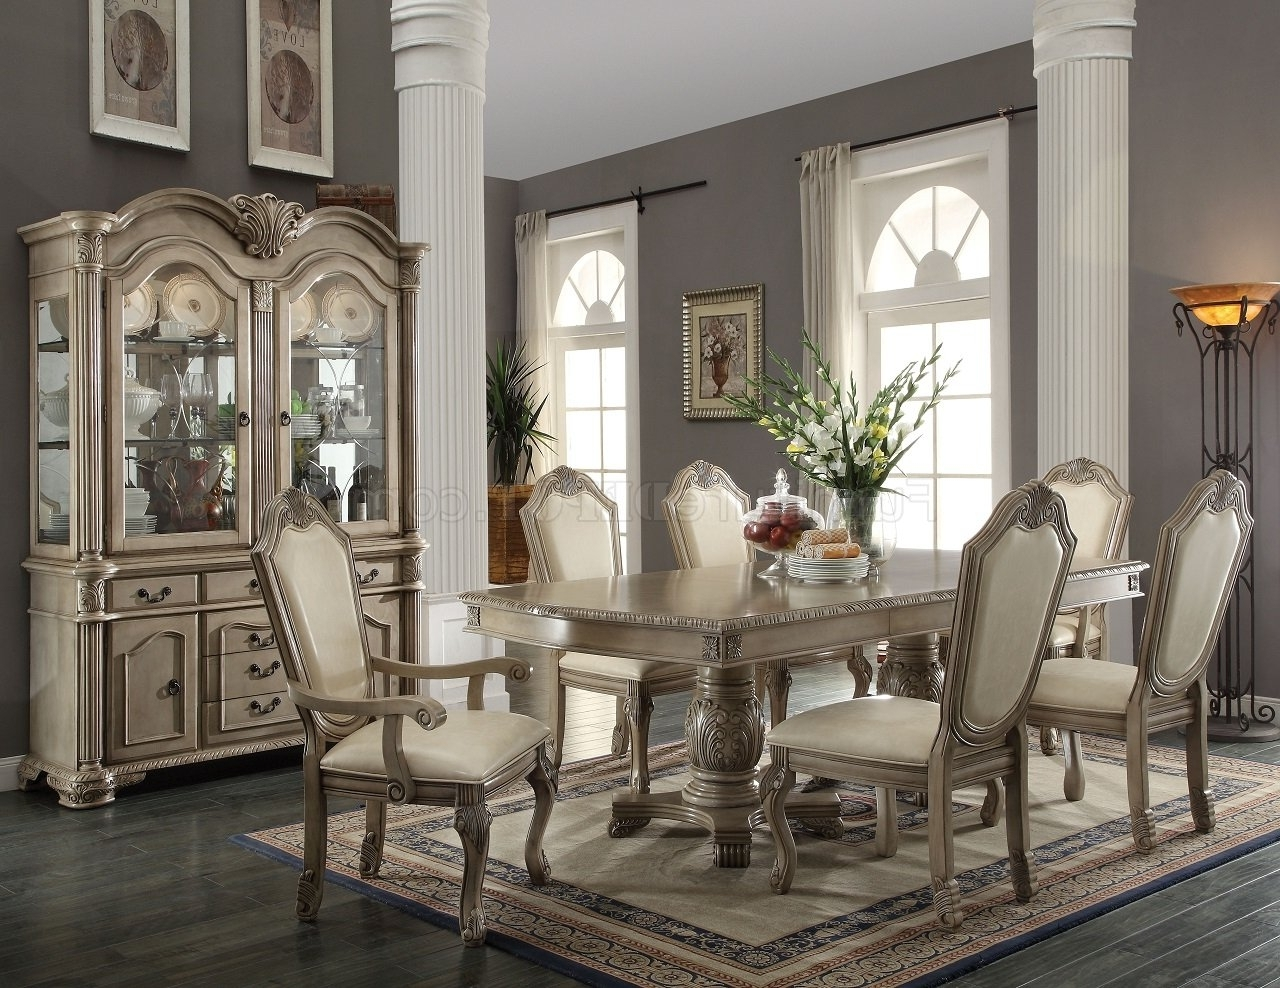 2018 Formal Dining Room Furniture: Dining Room Sets pertaining to Cream Lacquer Dining Tables